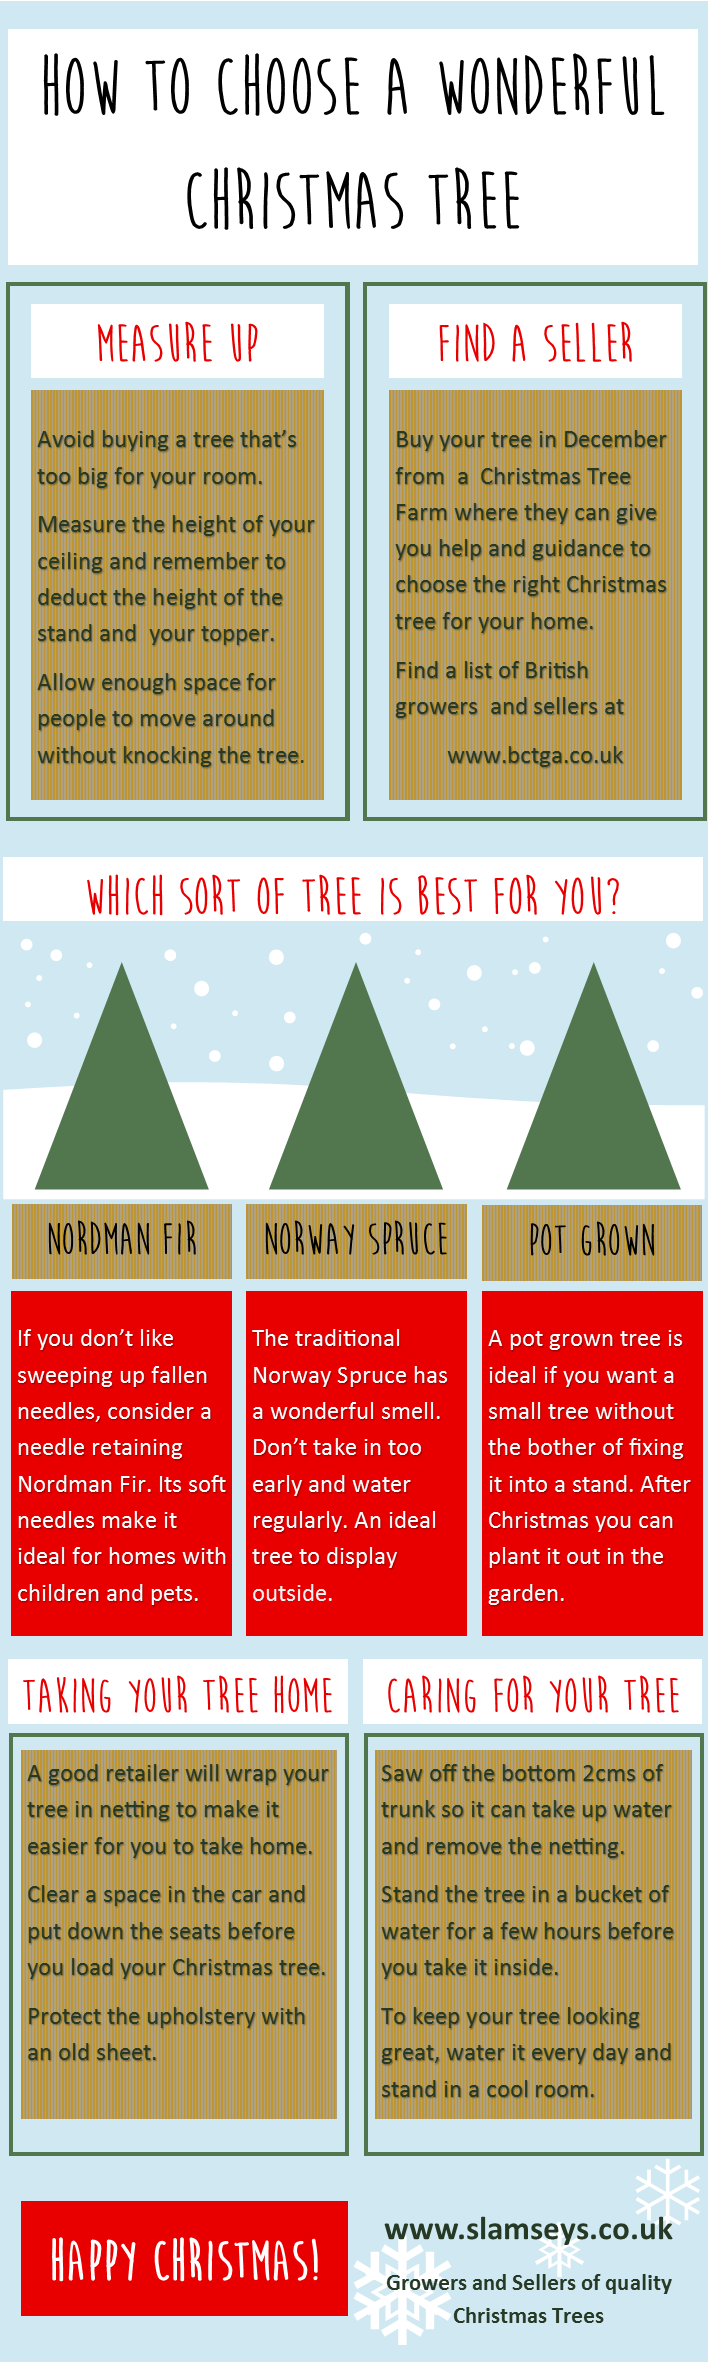 how to choose a wonderful Christmas tree